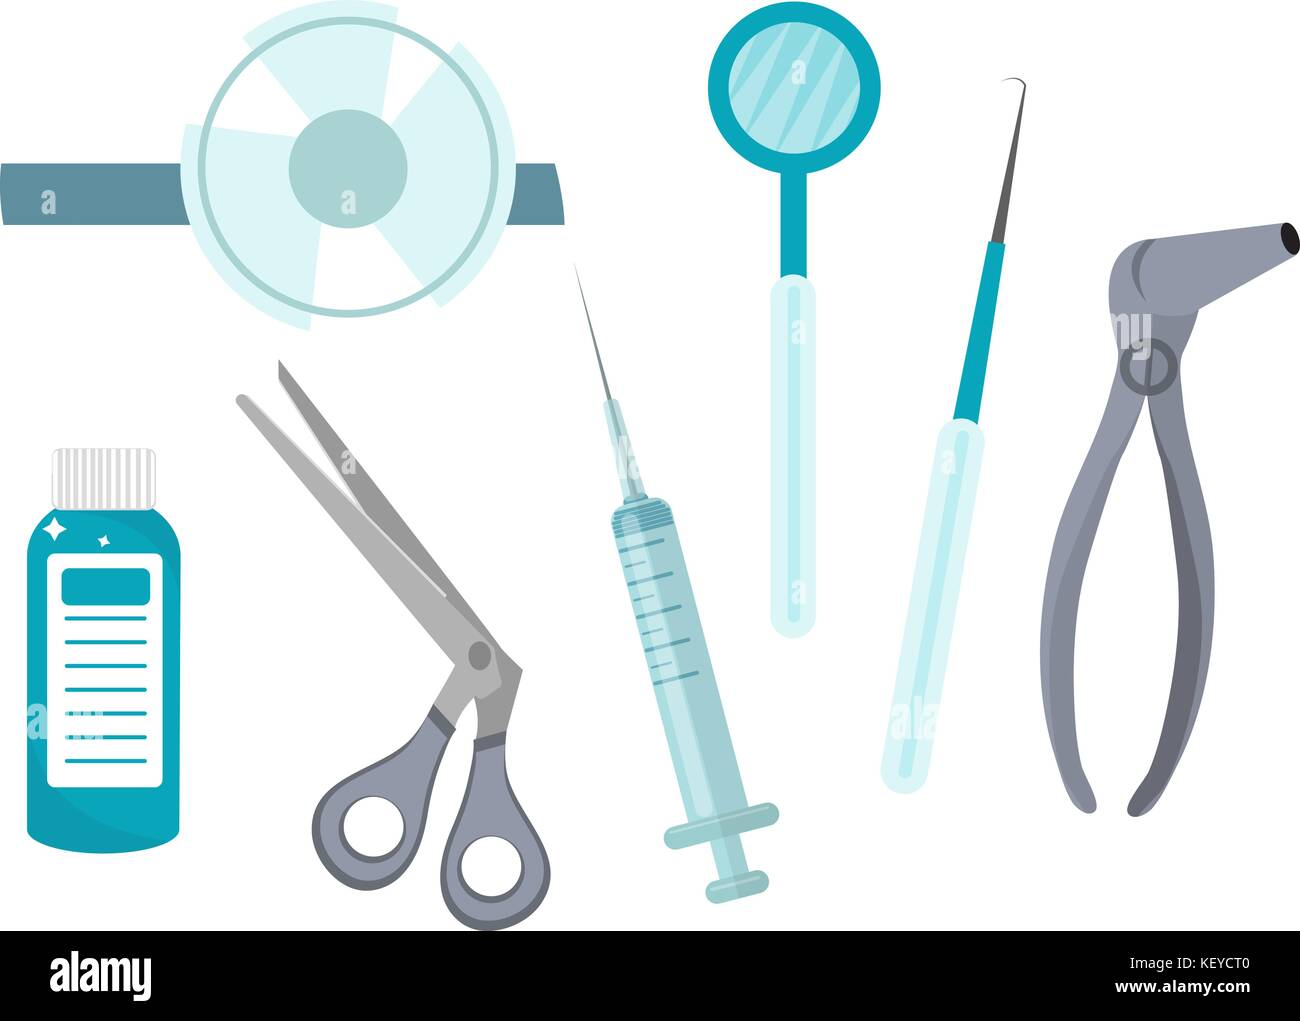 Otolaryngology tools icons, flat style. ENT equipment, isolated on white background. Medicine concept. Vector illustration. Stock Vector